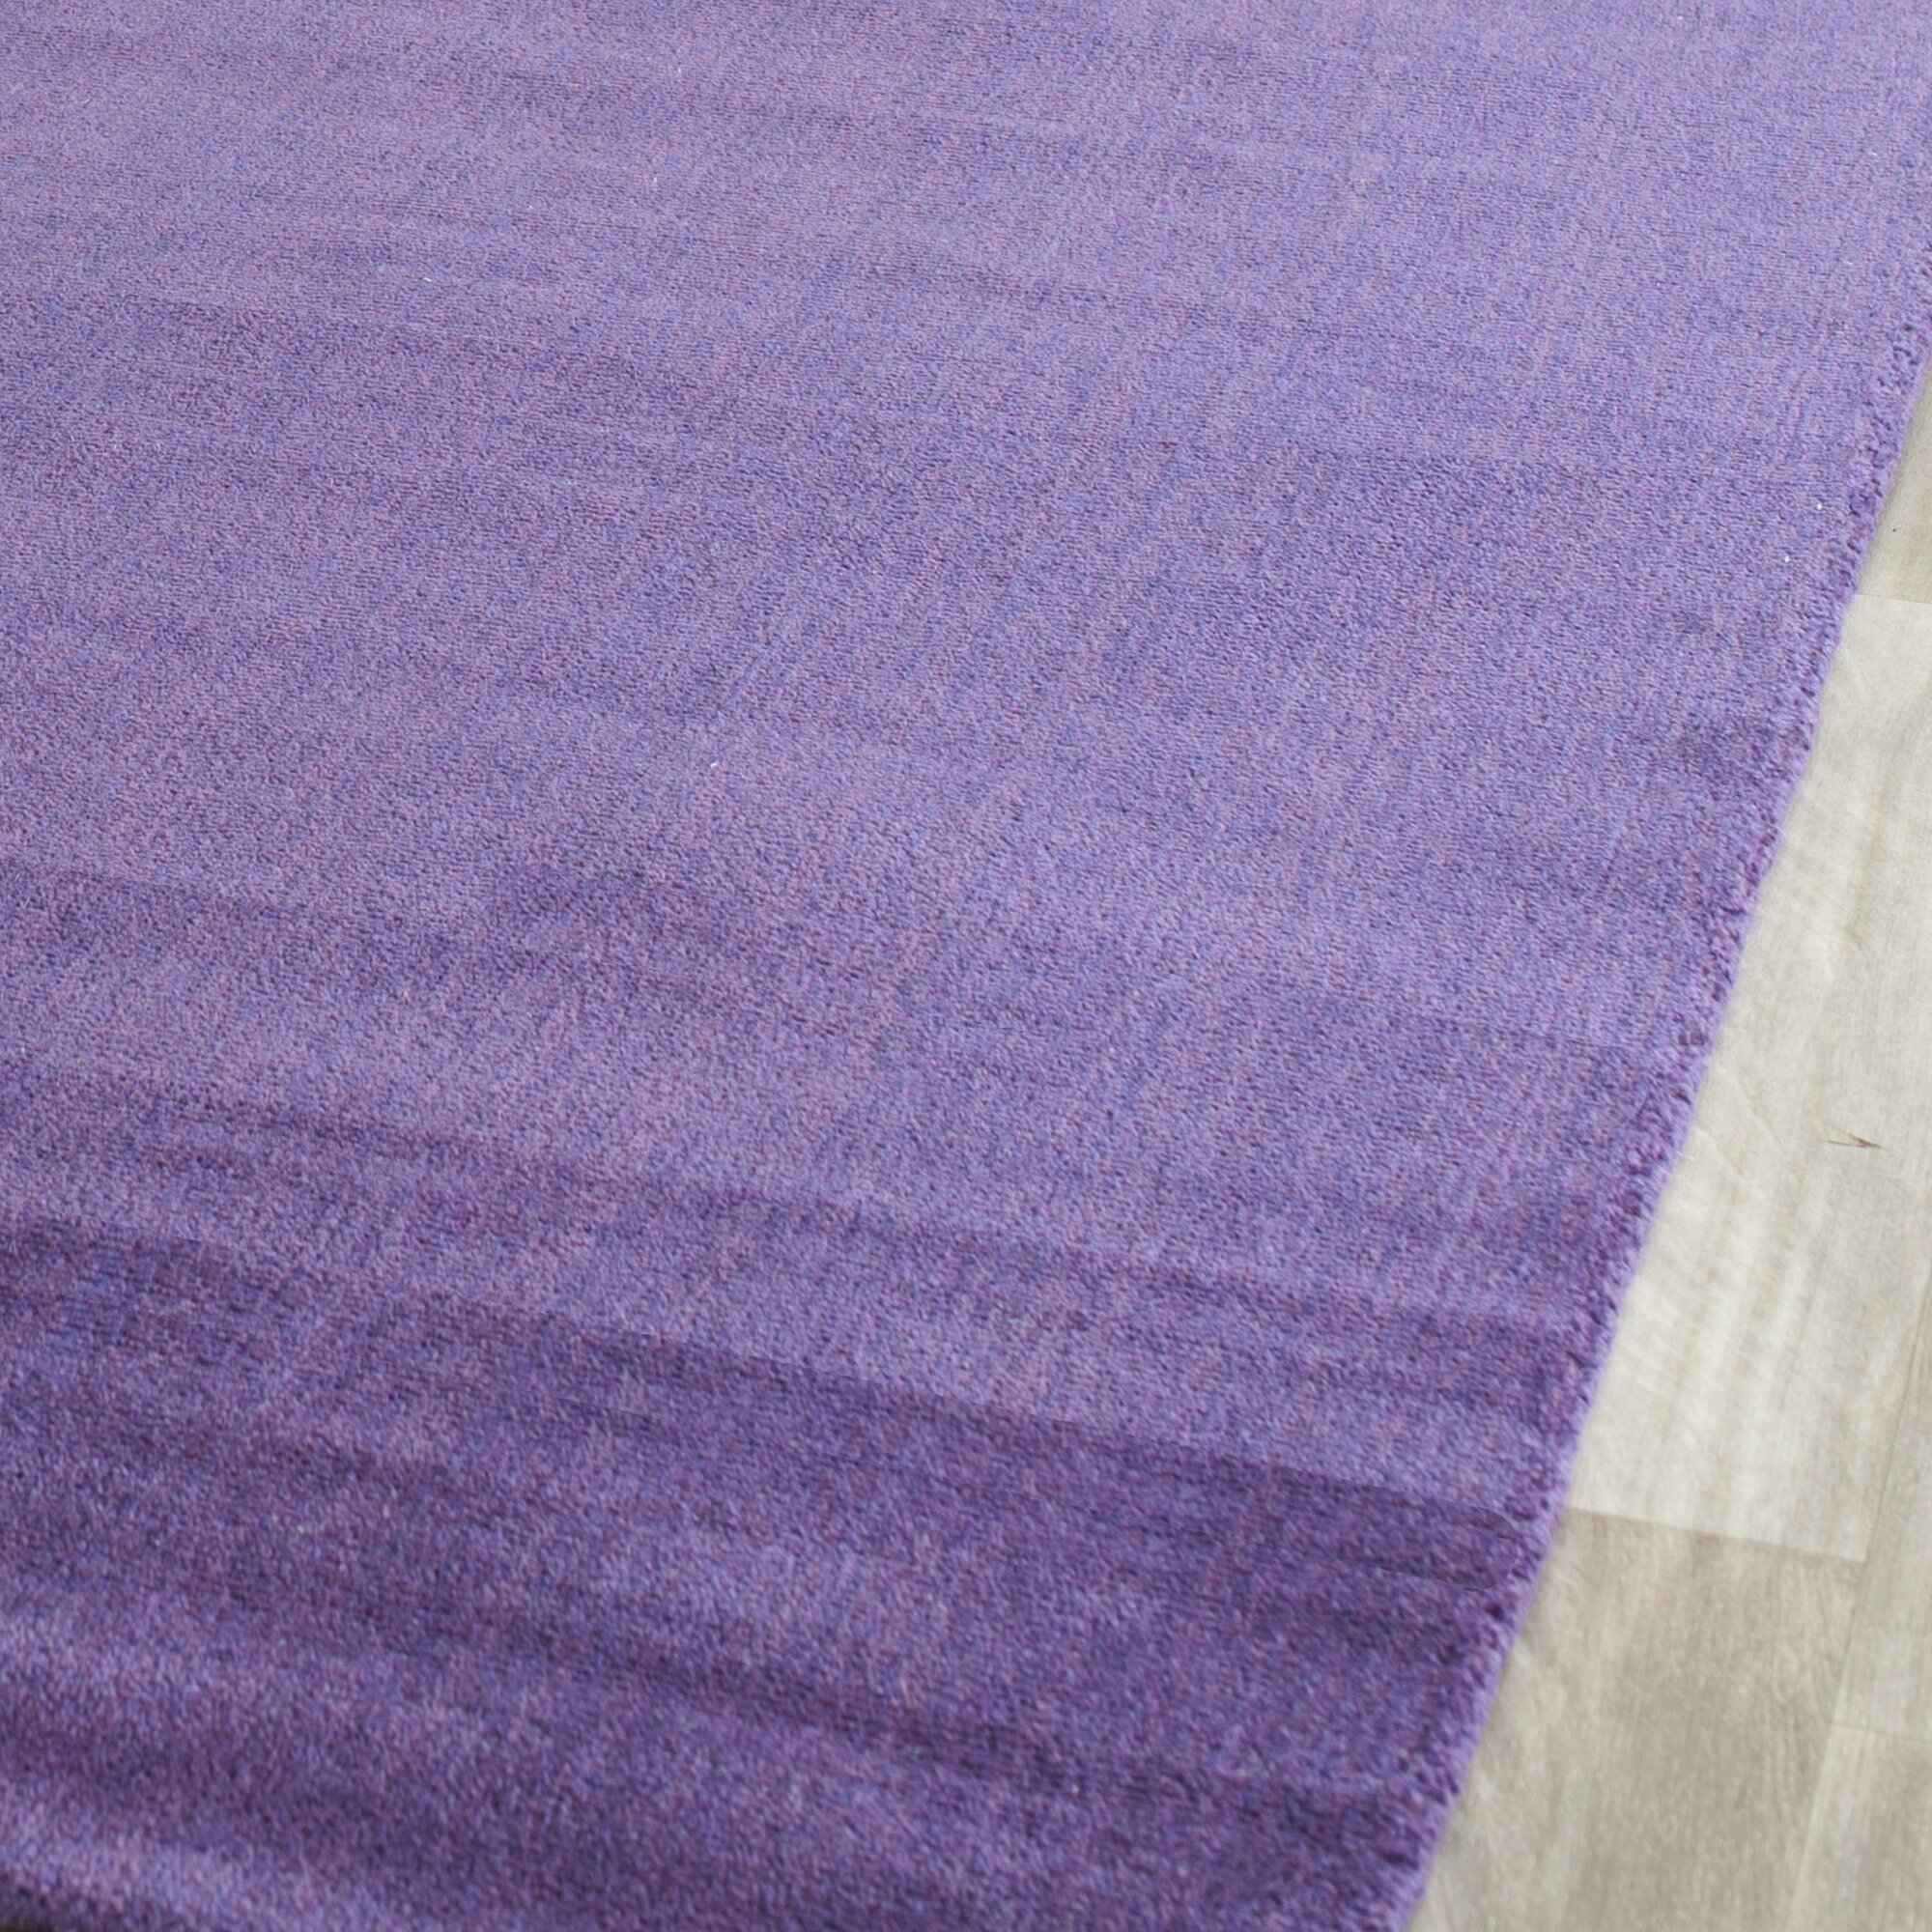 Safavieh himalayan purple area rug reviews wayfair for Rugs with purple accents